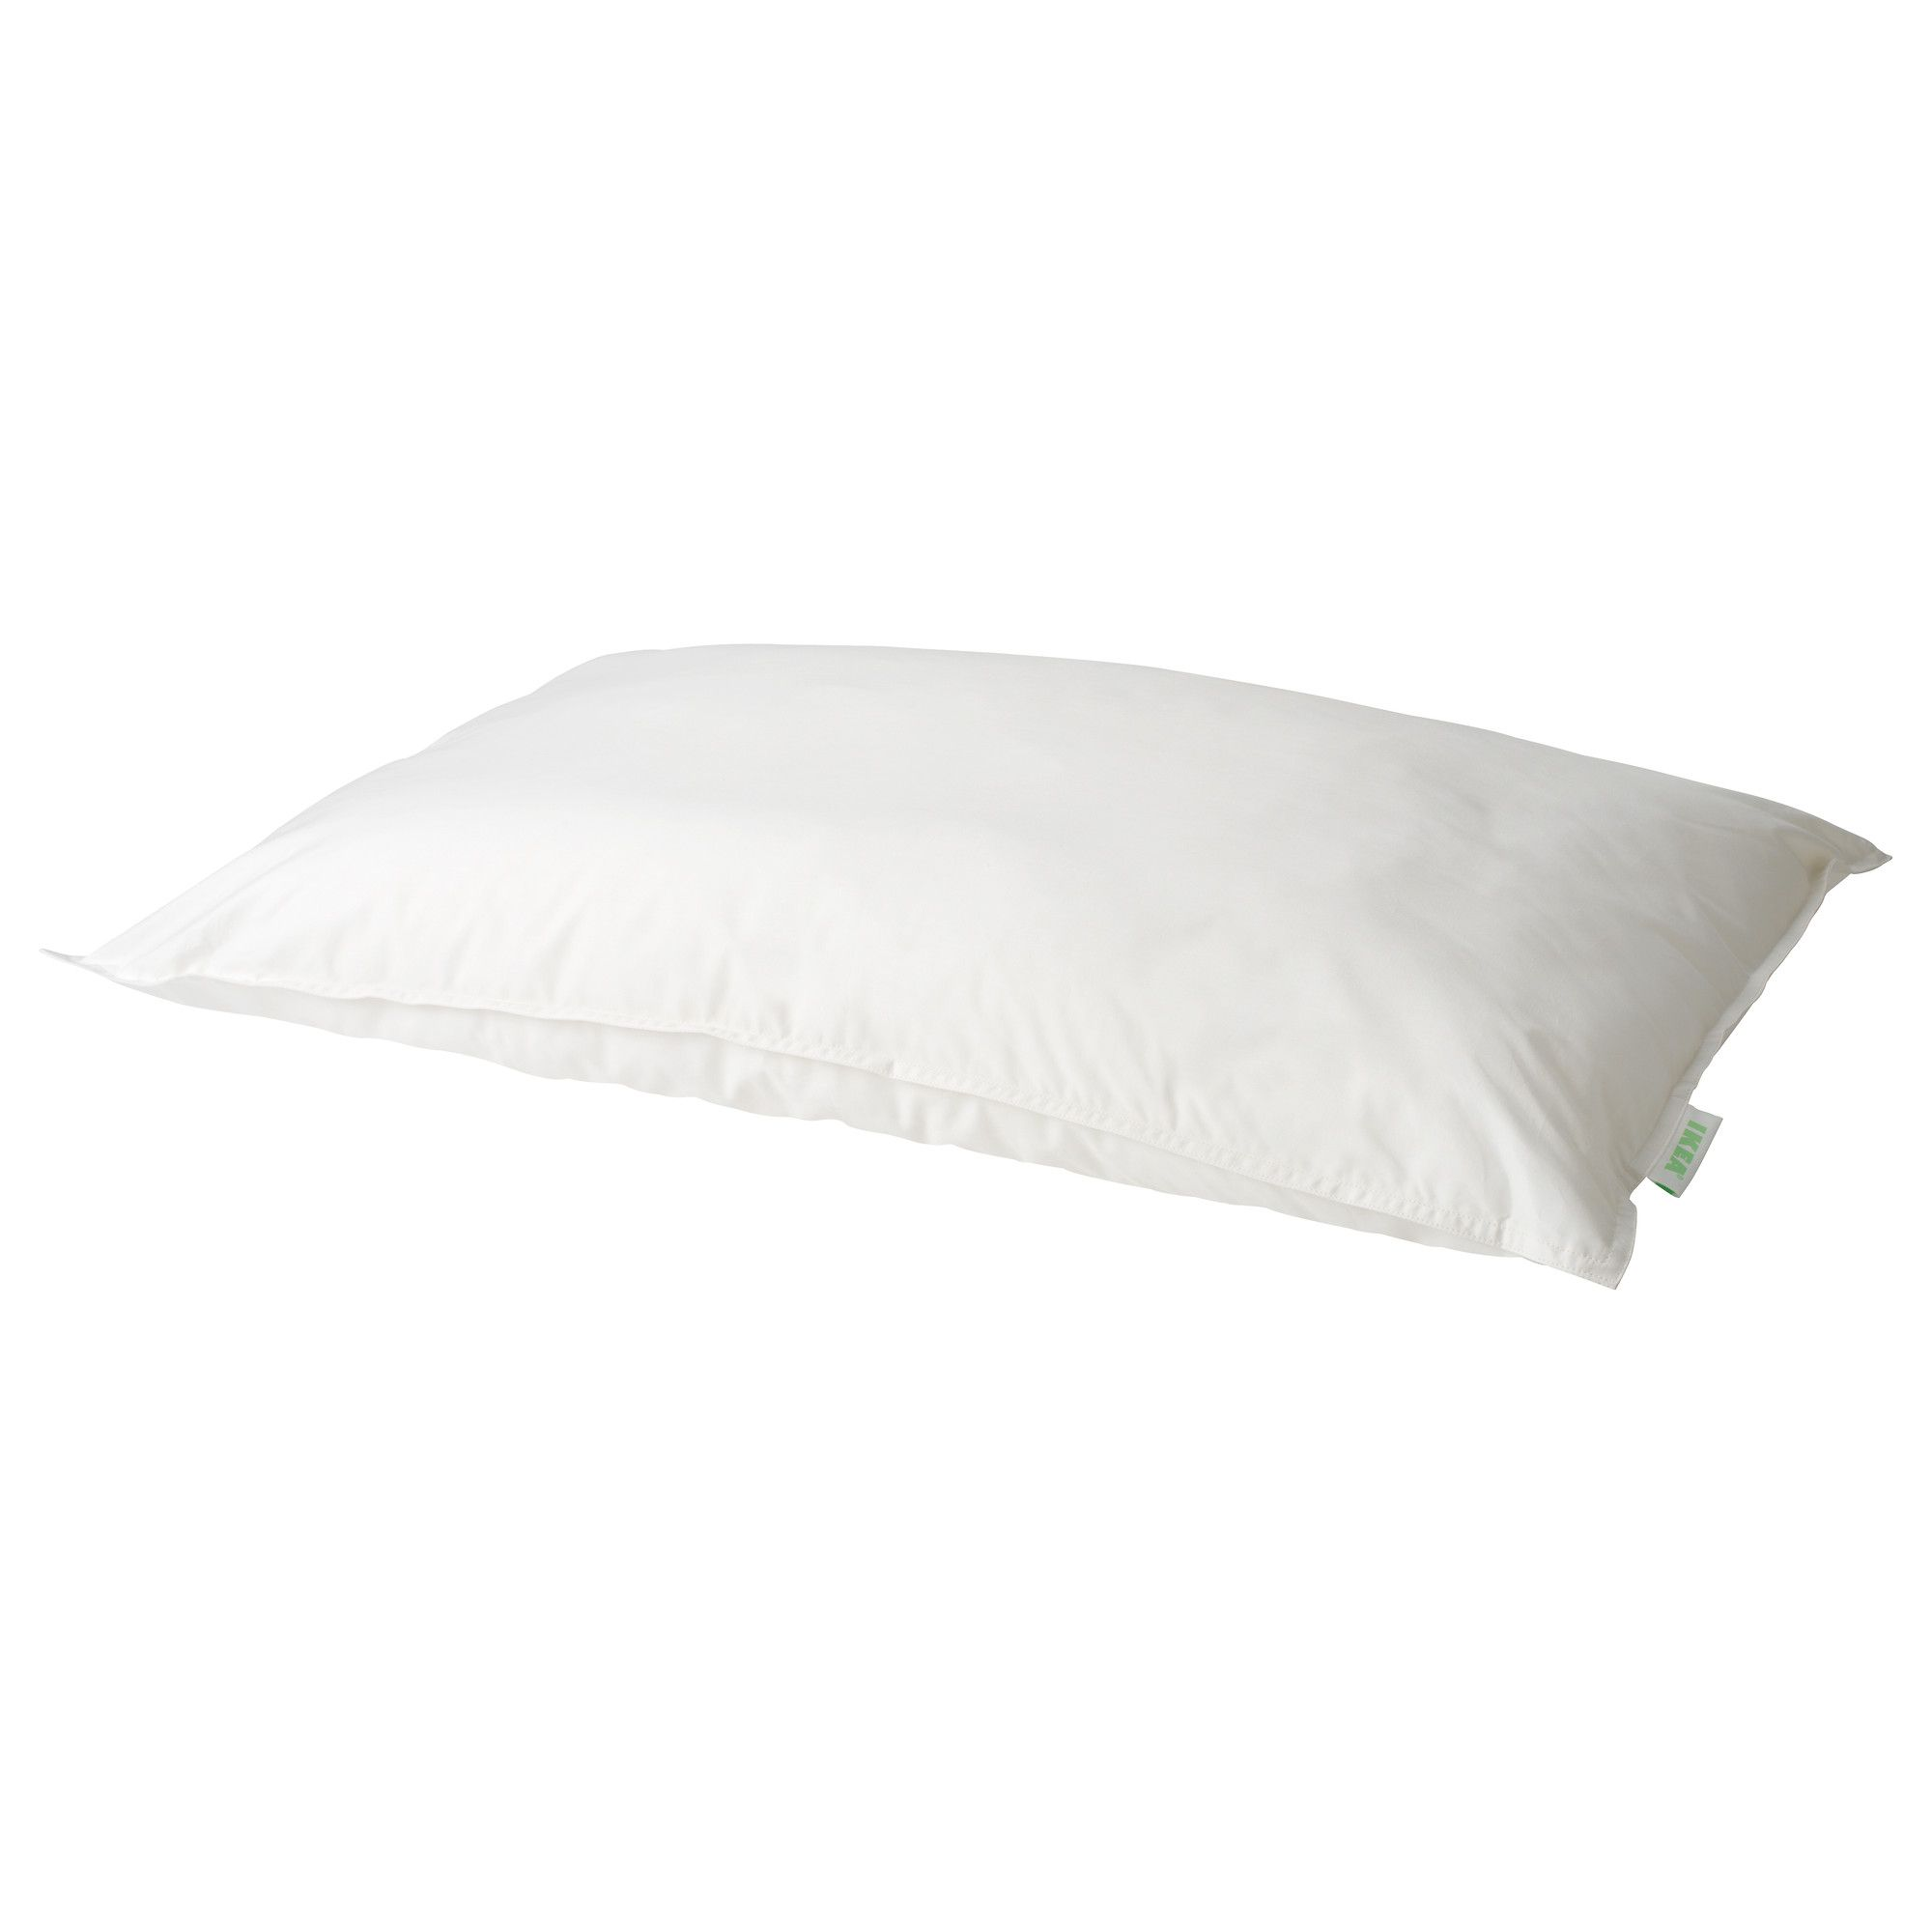 blanket pillows side cushion memory foam are for stellybelly pillow laying belly kupon top good gallery cushionregnancyillow sleepers stomach best